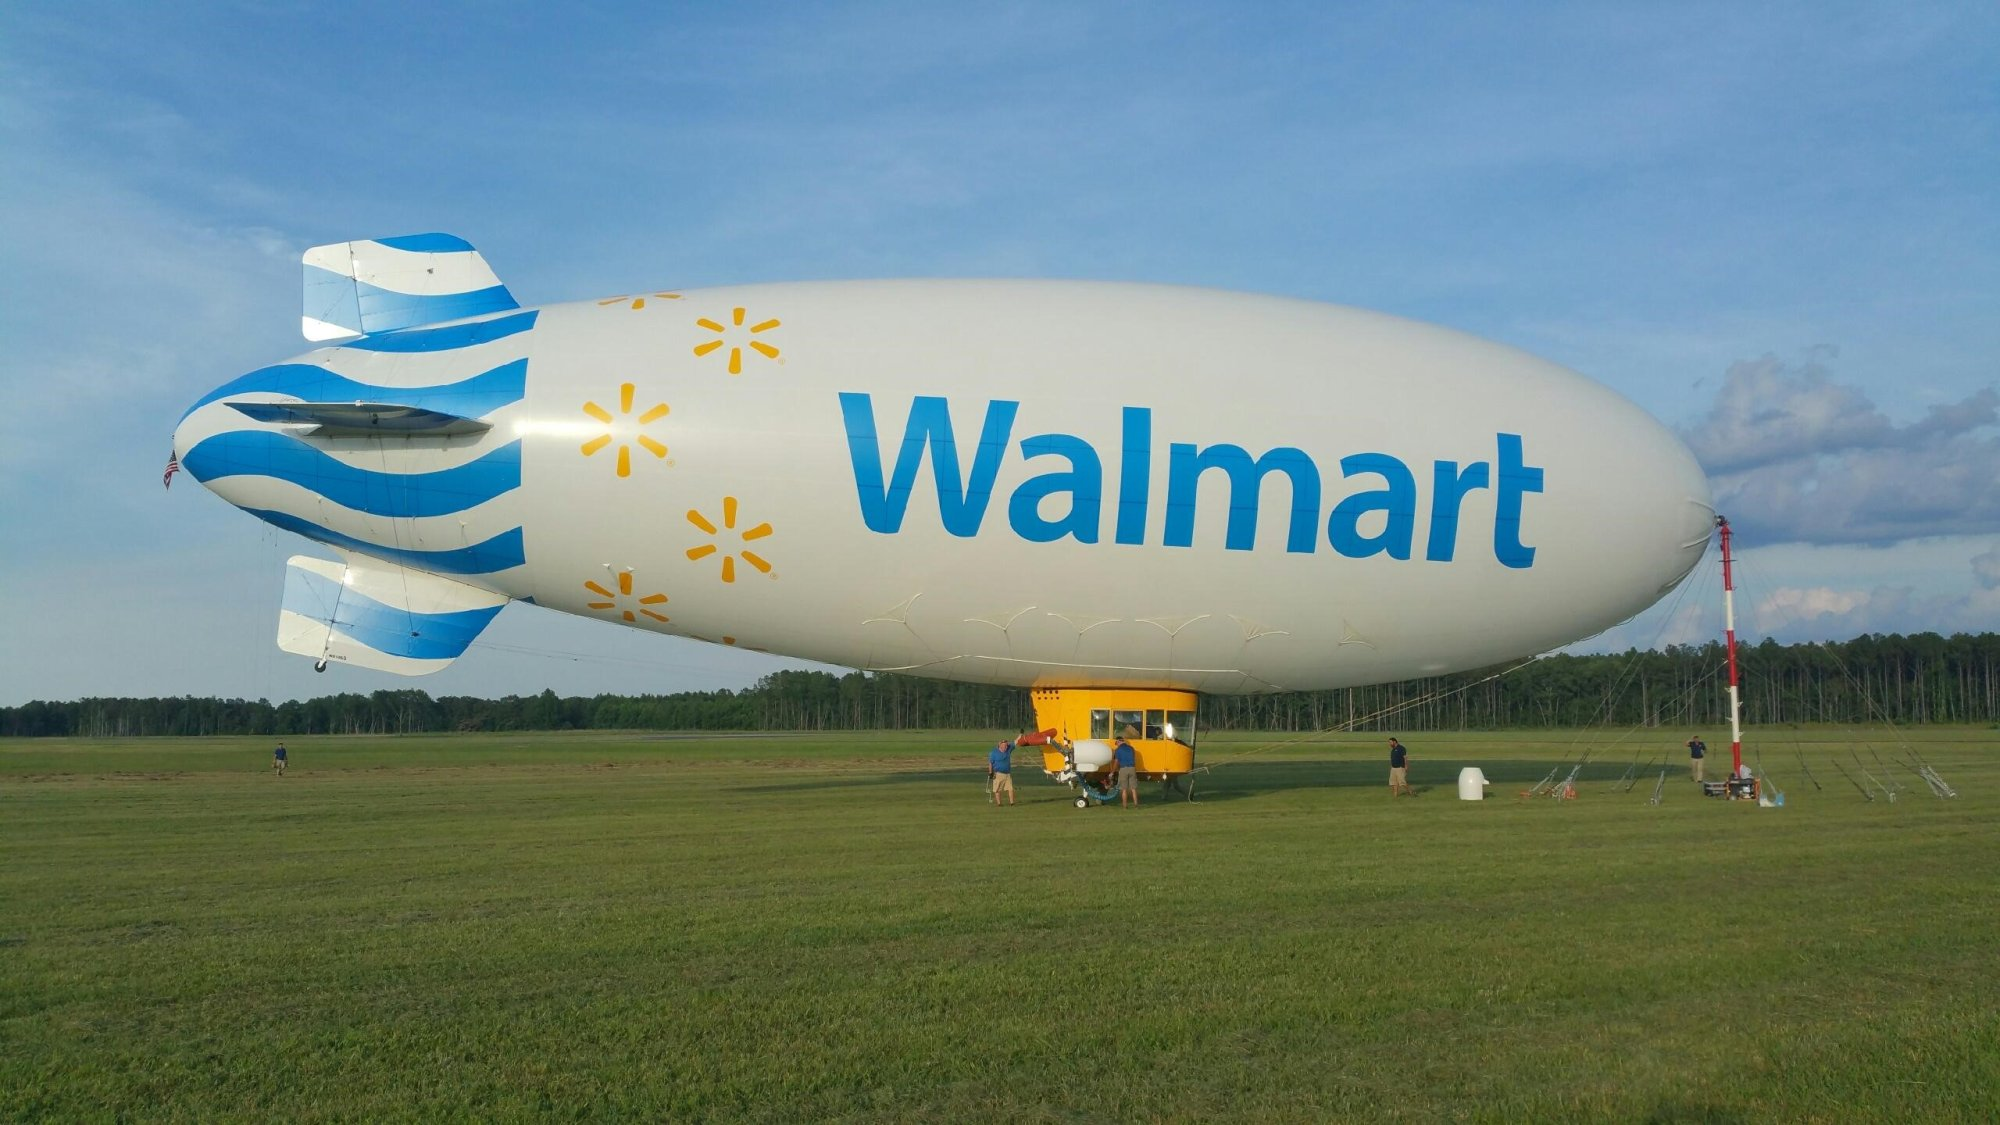 Walmart May Use A Blimp To Deliver With Drones